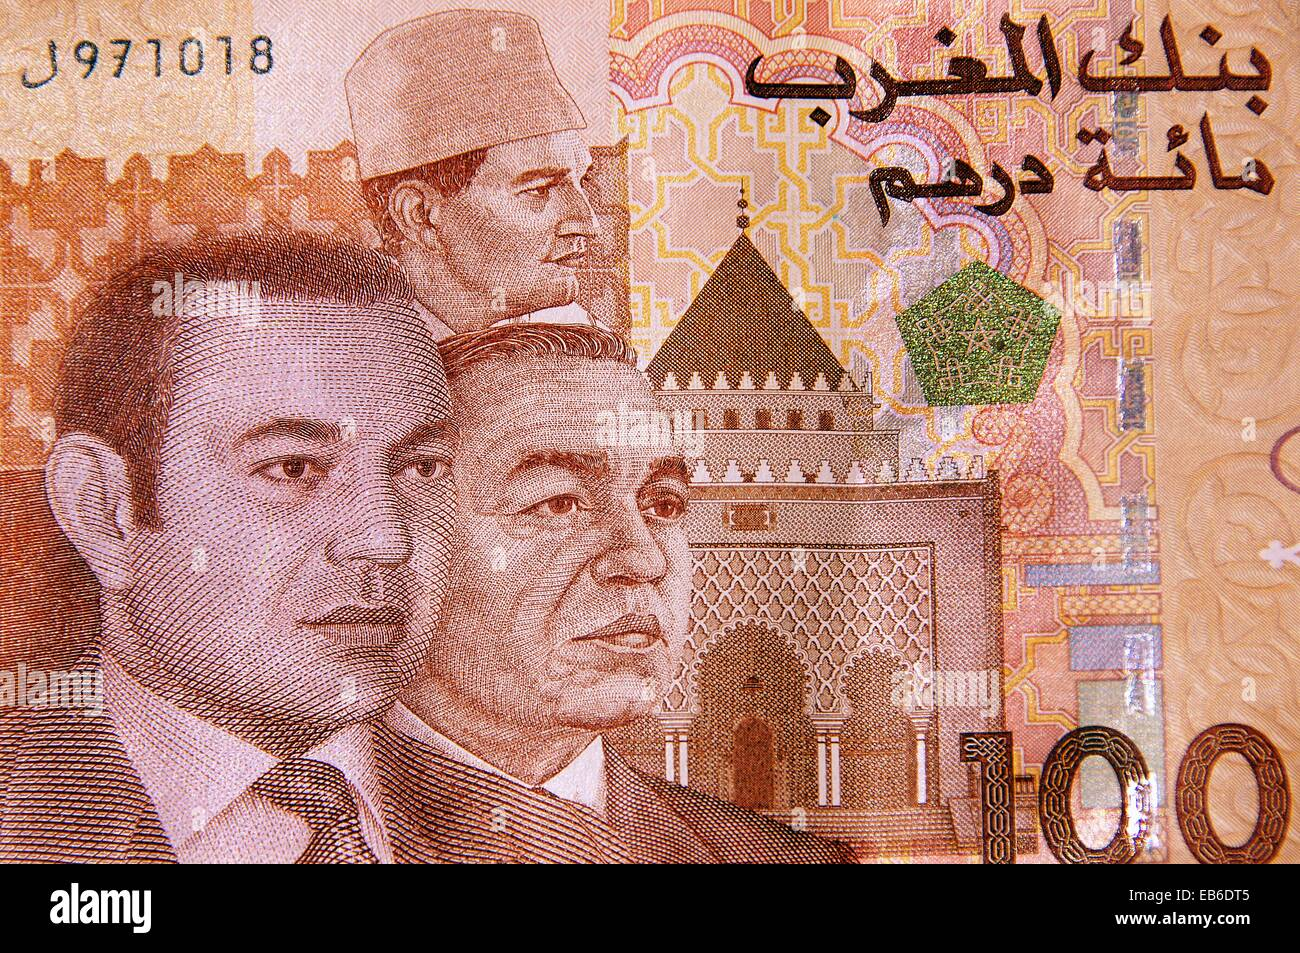 The 3 kings of Morocco since independence in 1956 (Mohammed VI, Mohammed V and Hassan II) on a 100 Dirham banknote, - Stock Image